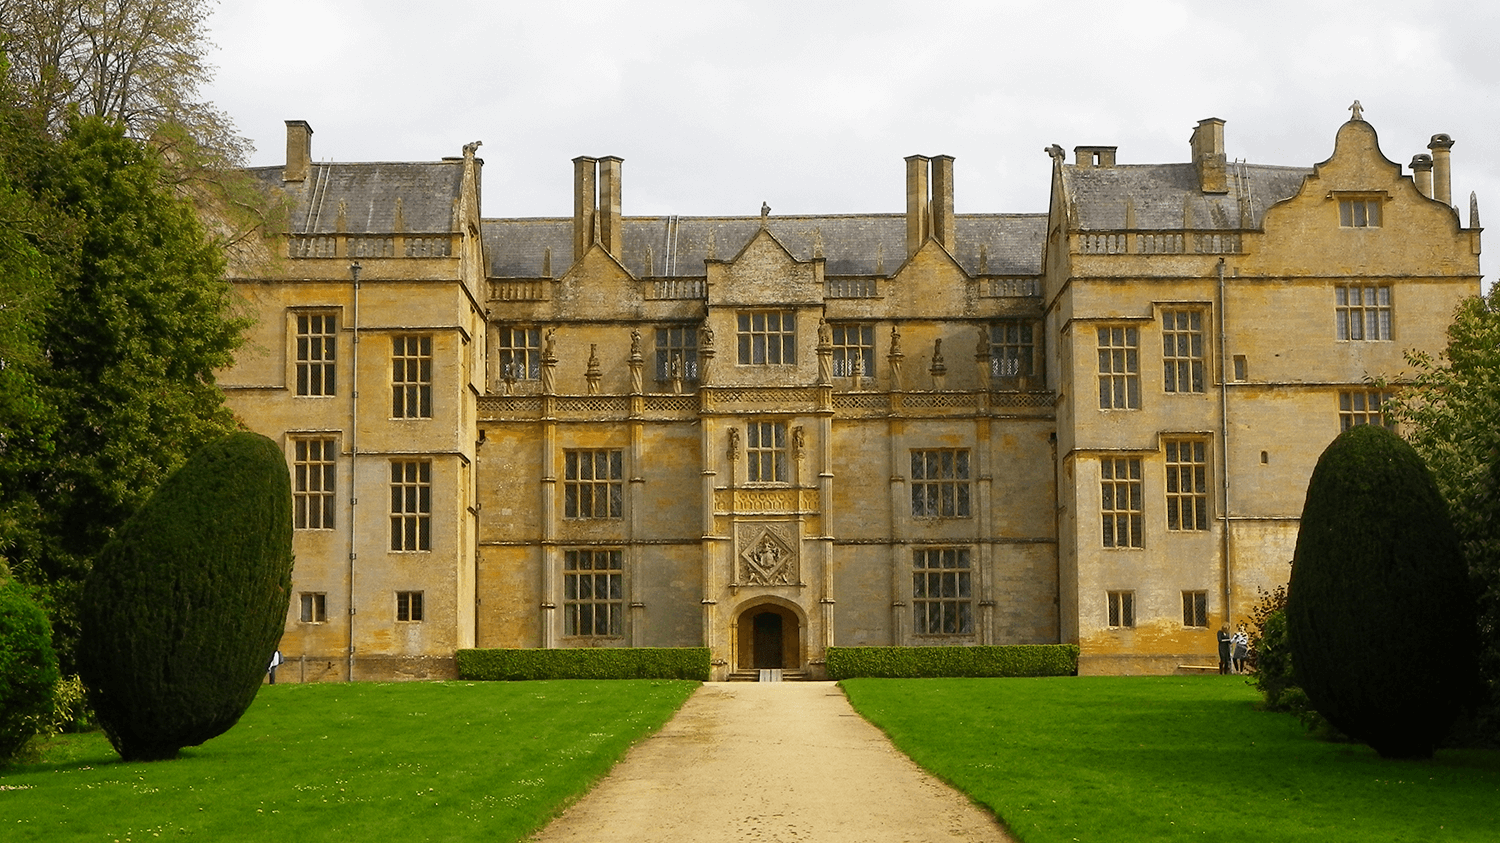 Large National Trust building near Yeovil, Somerset